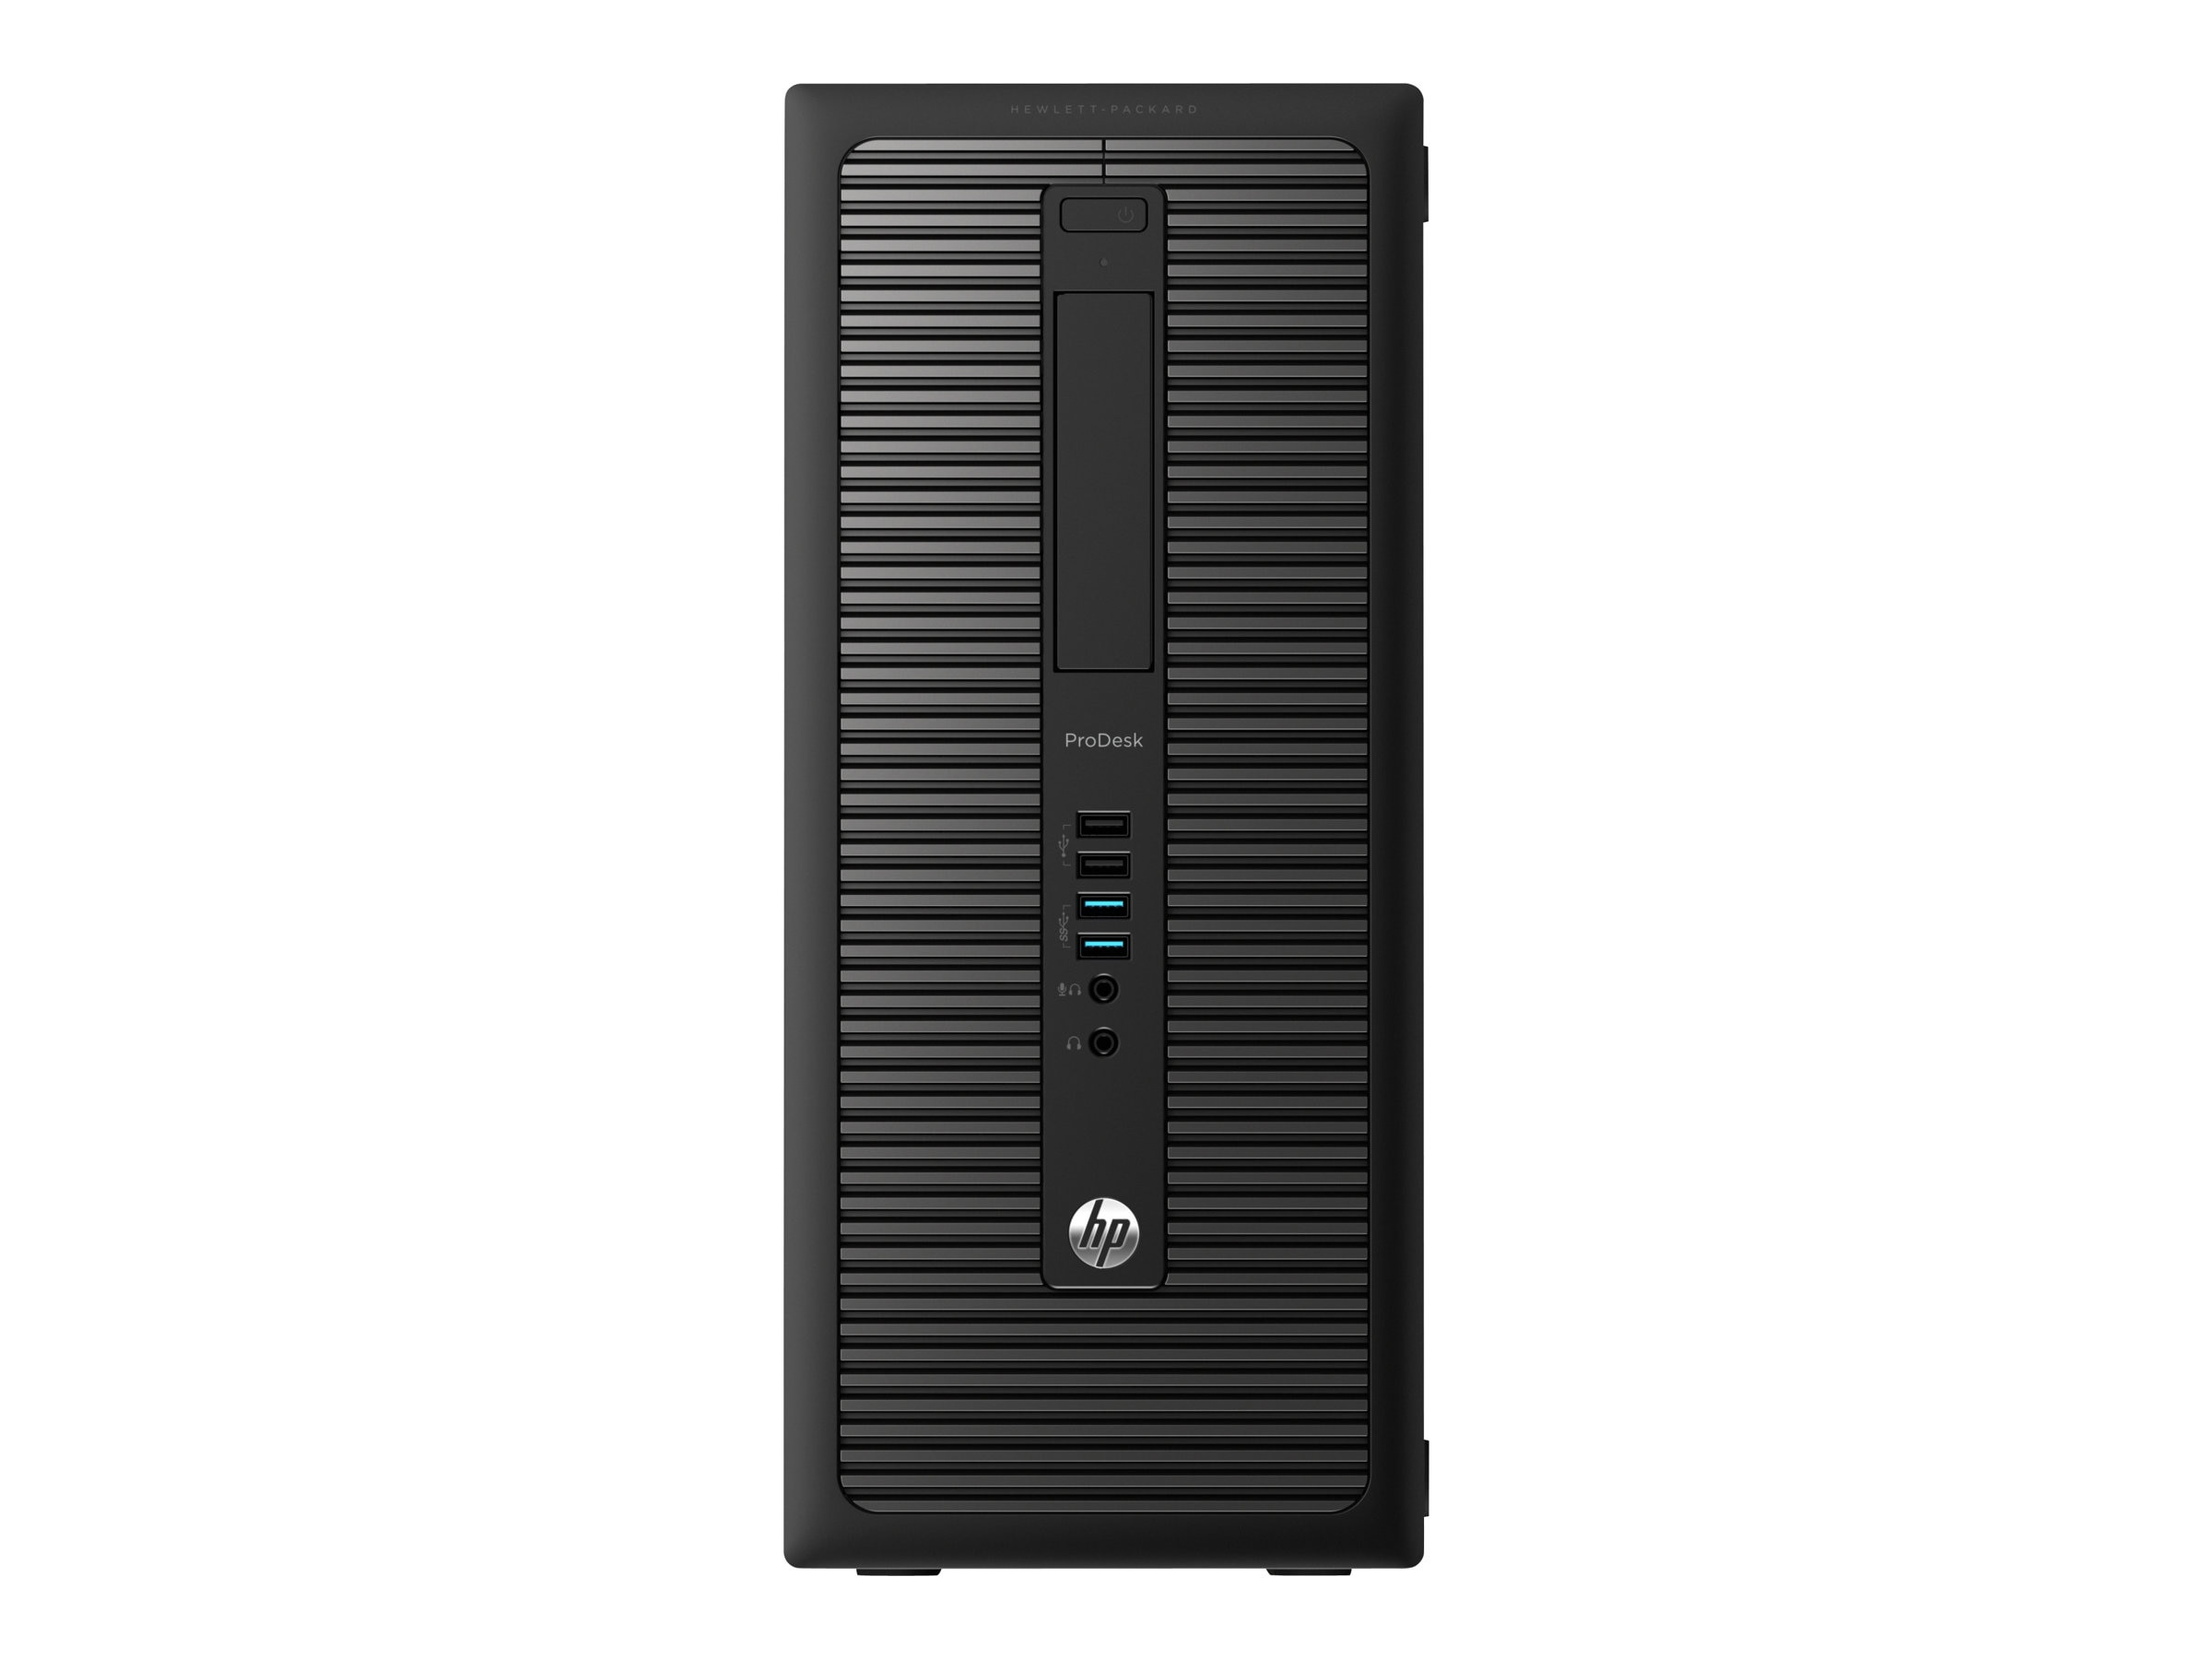 HP EliteDesk 800 Tower Core i7-4770 3.4GHz 8GB 256GB, G9N20UP#ABA